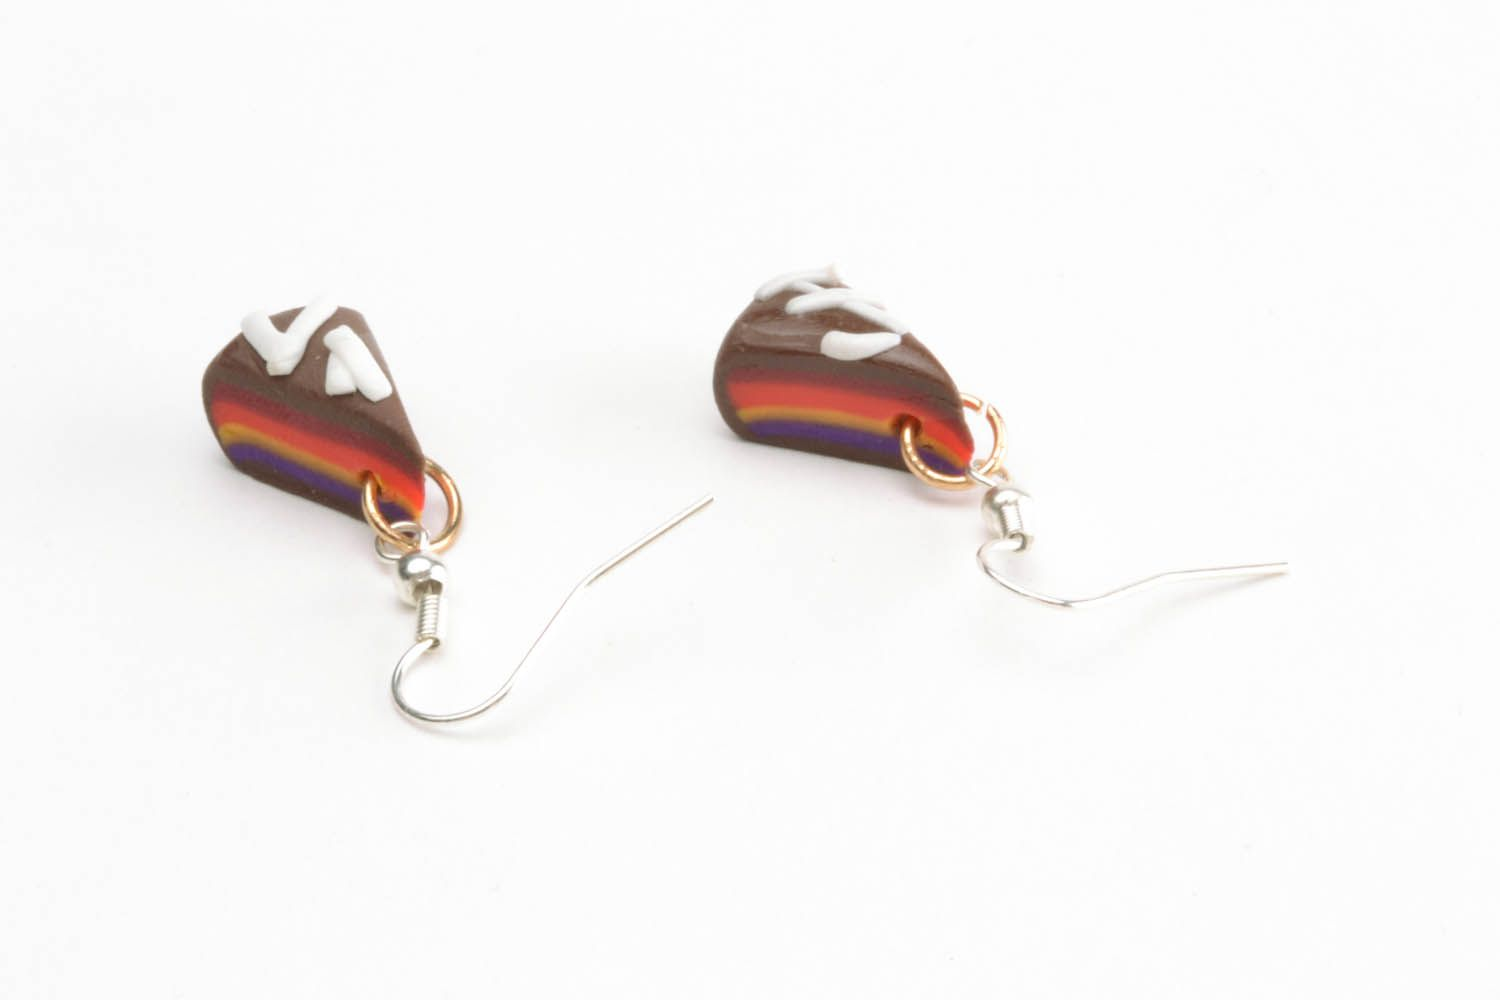 Polymer clay earrings in the shape of cakes photo 2